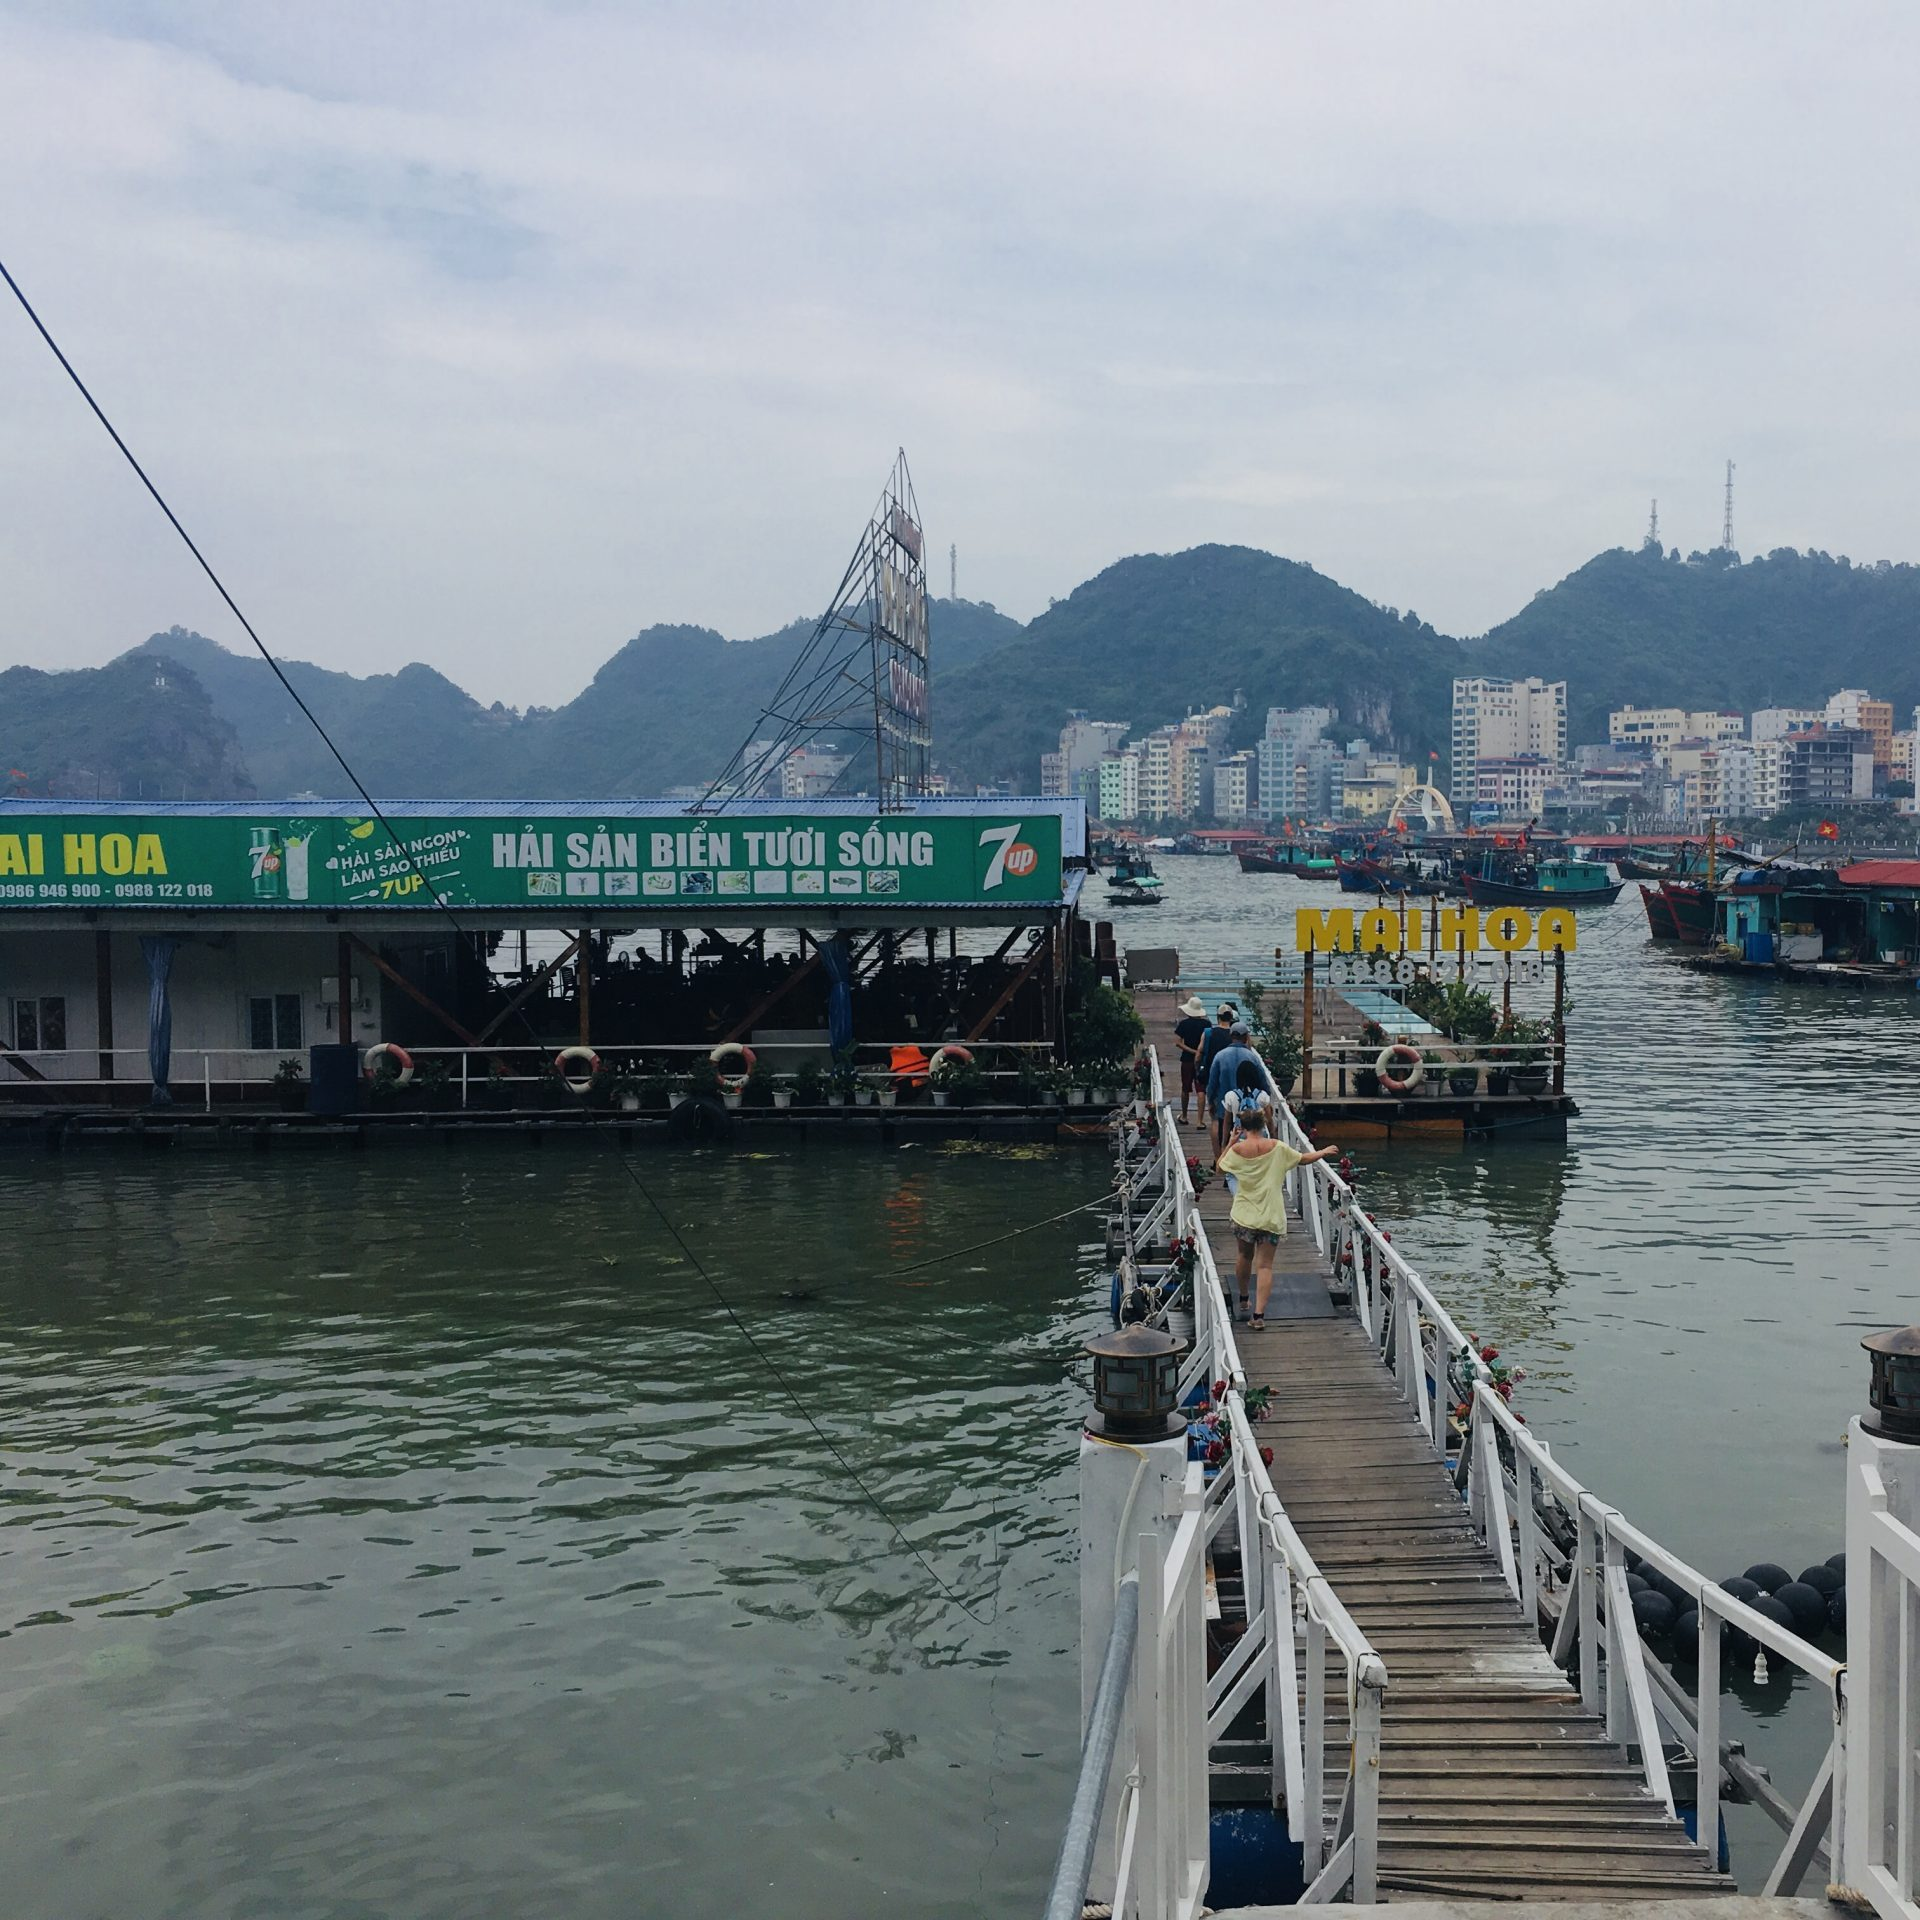 Floating Restaurant on Cat Ba Island